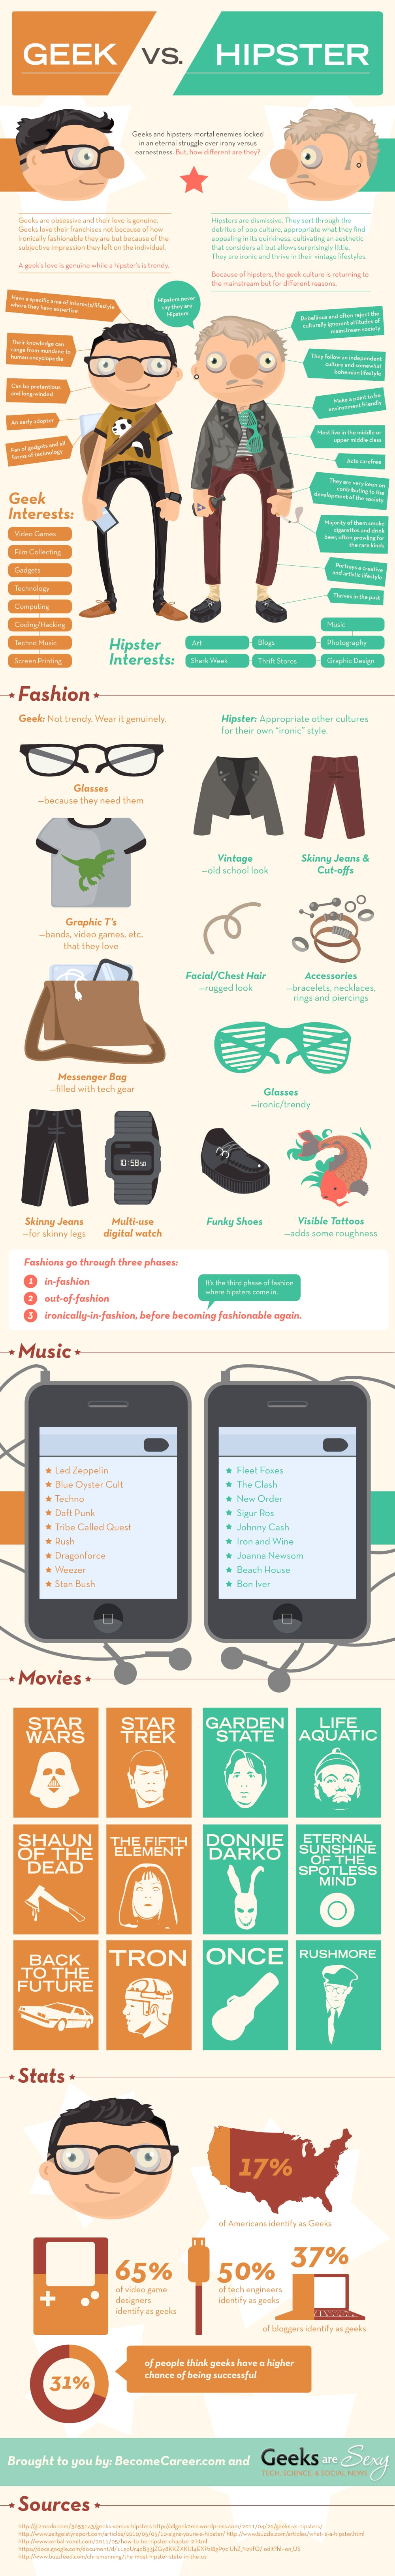 Geeks vs. Hipsters [Infographic]